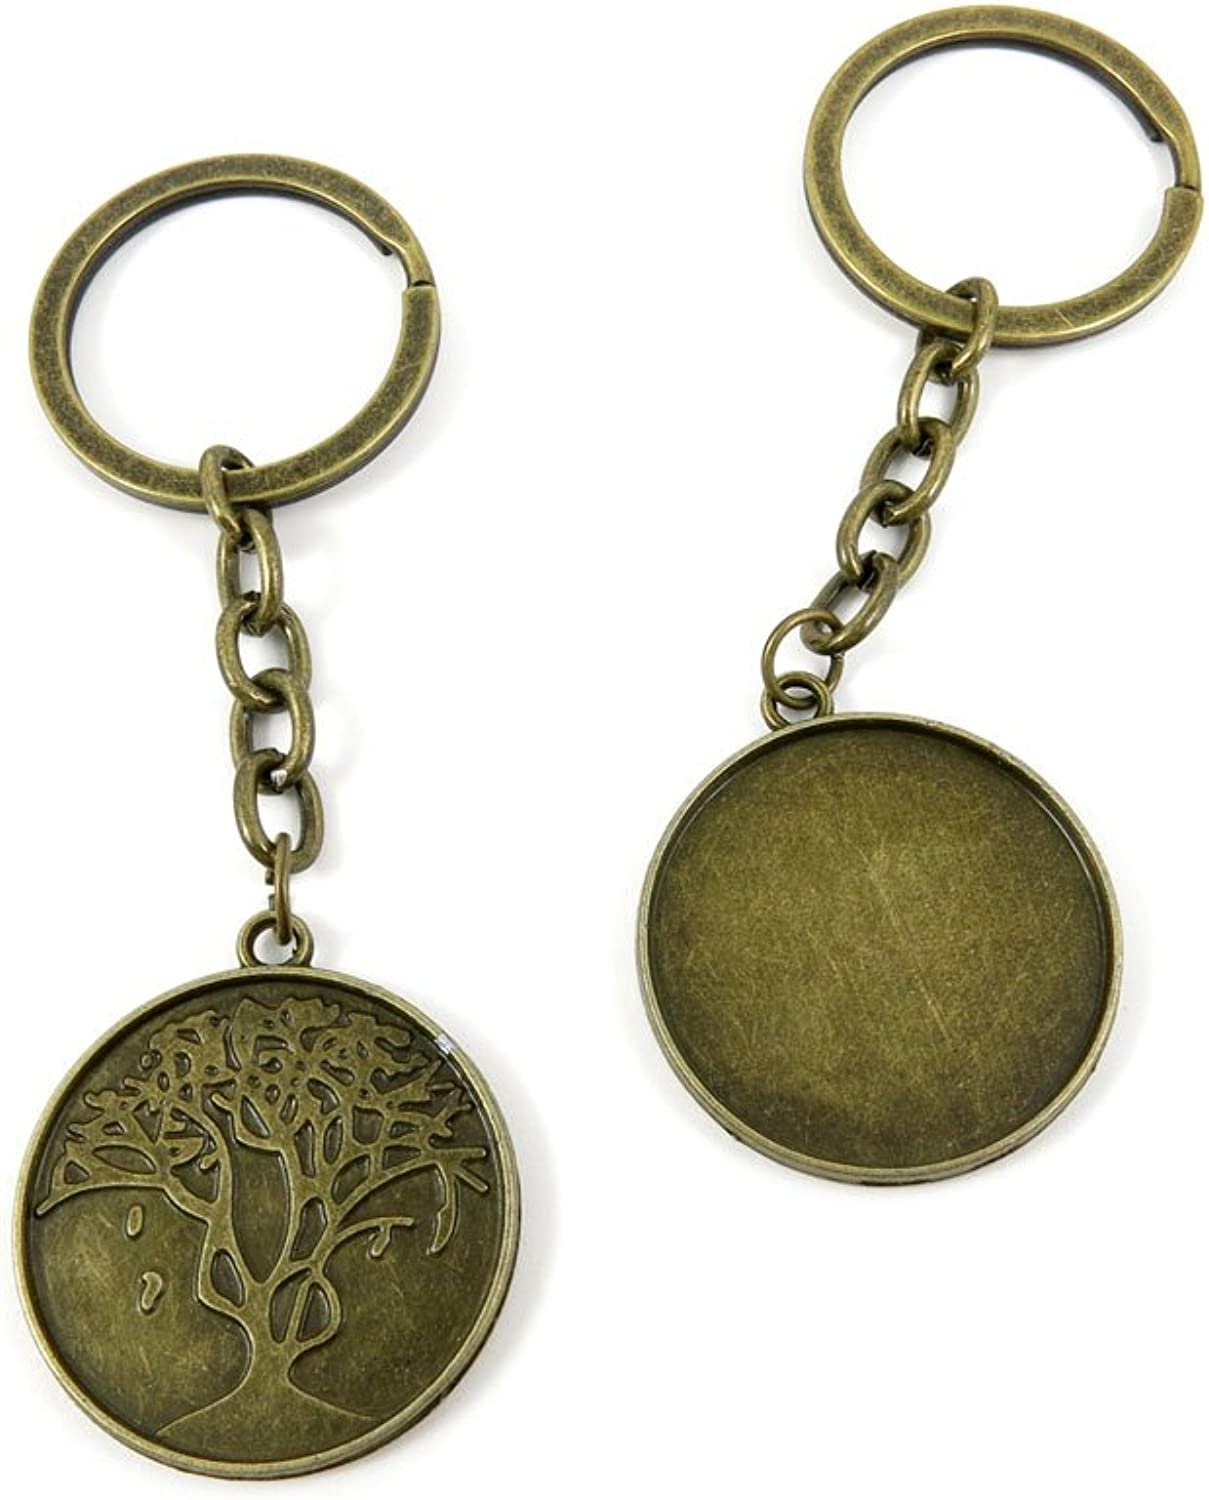 80 PCS Keyring Car Door Key Ring Tag Chain Keychain Wholesale Suppliers Charms Handmade E5DJ8 Round Cabochon Frame Base